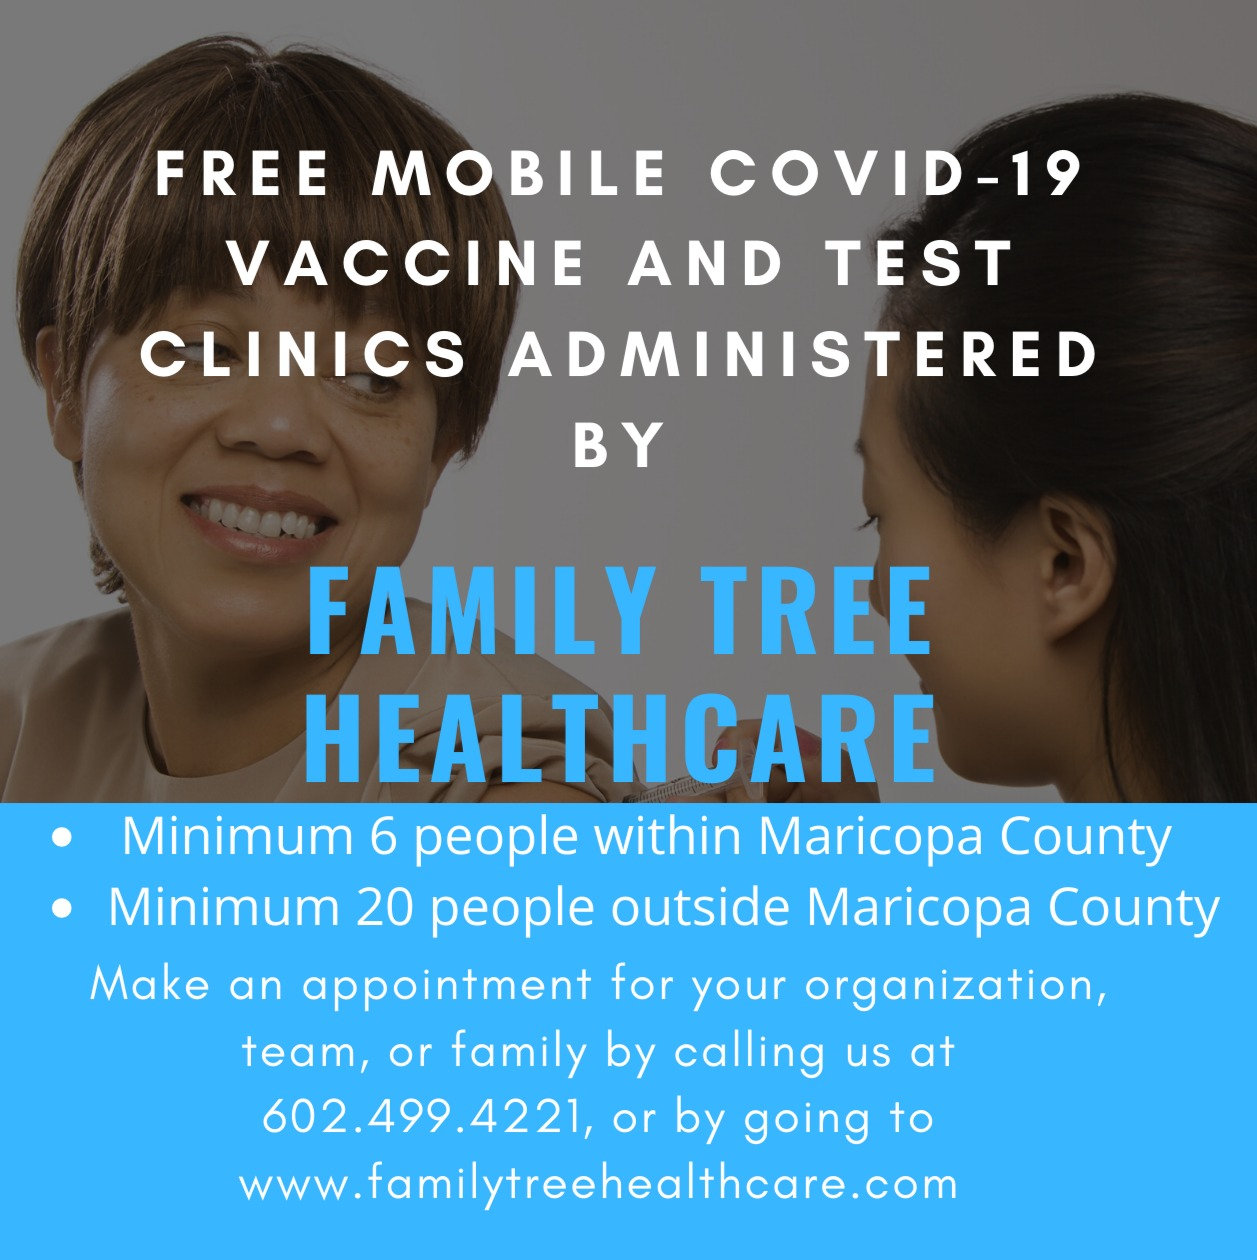 Free COVID Mobile Vaccine and Testing